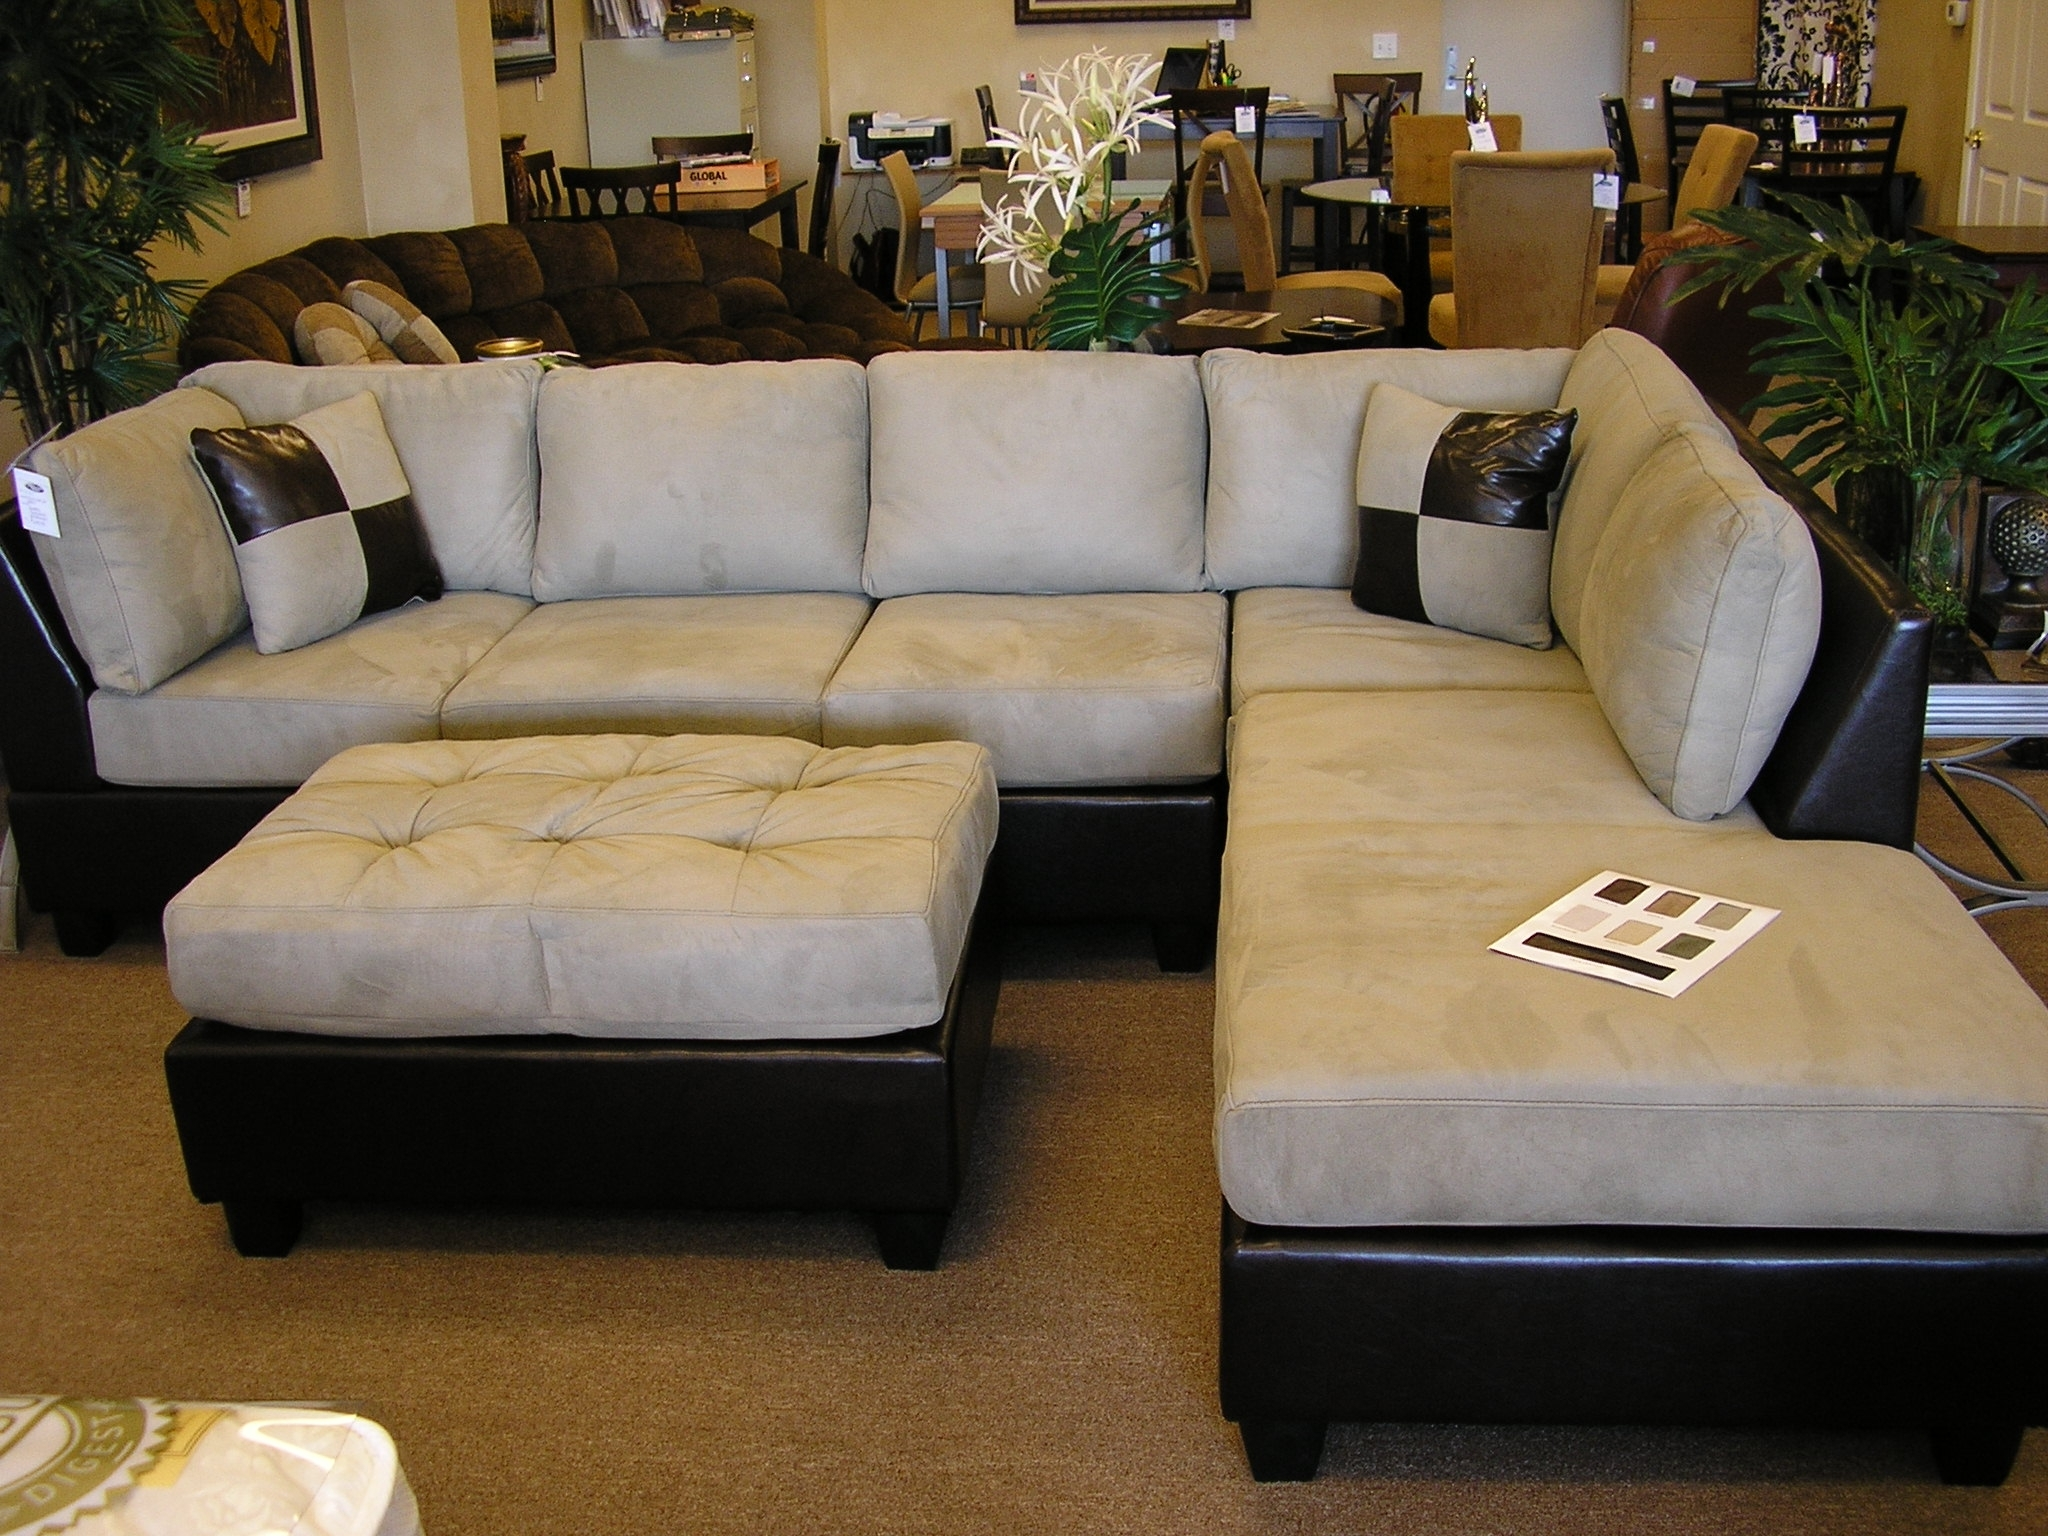 Cheap Sectional Sofa With Ottoman | Catosfera For Small Sectional Sofas With Chaise And Ottoman (View 2 of 15)